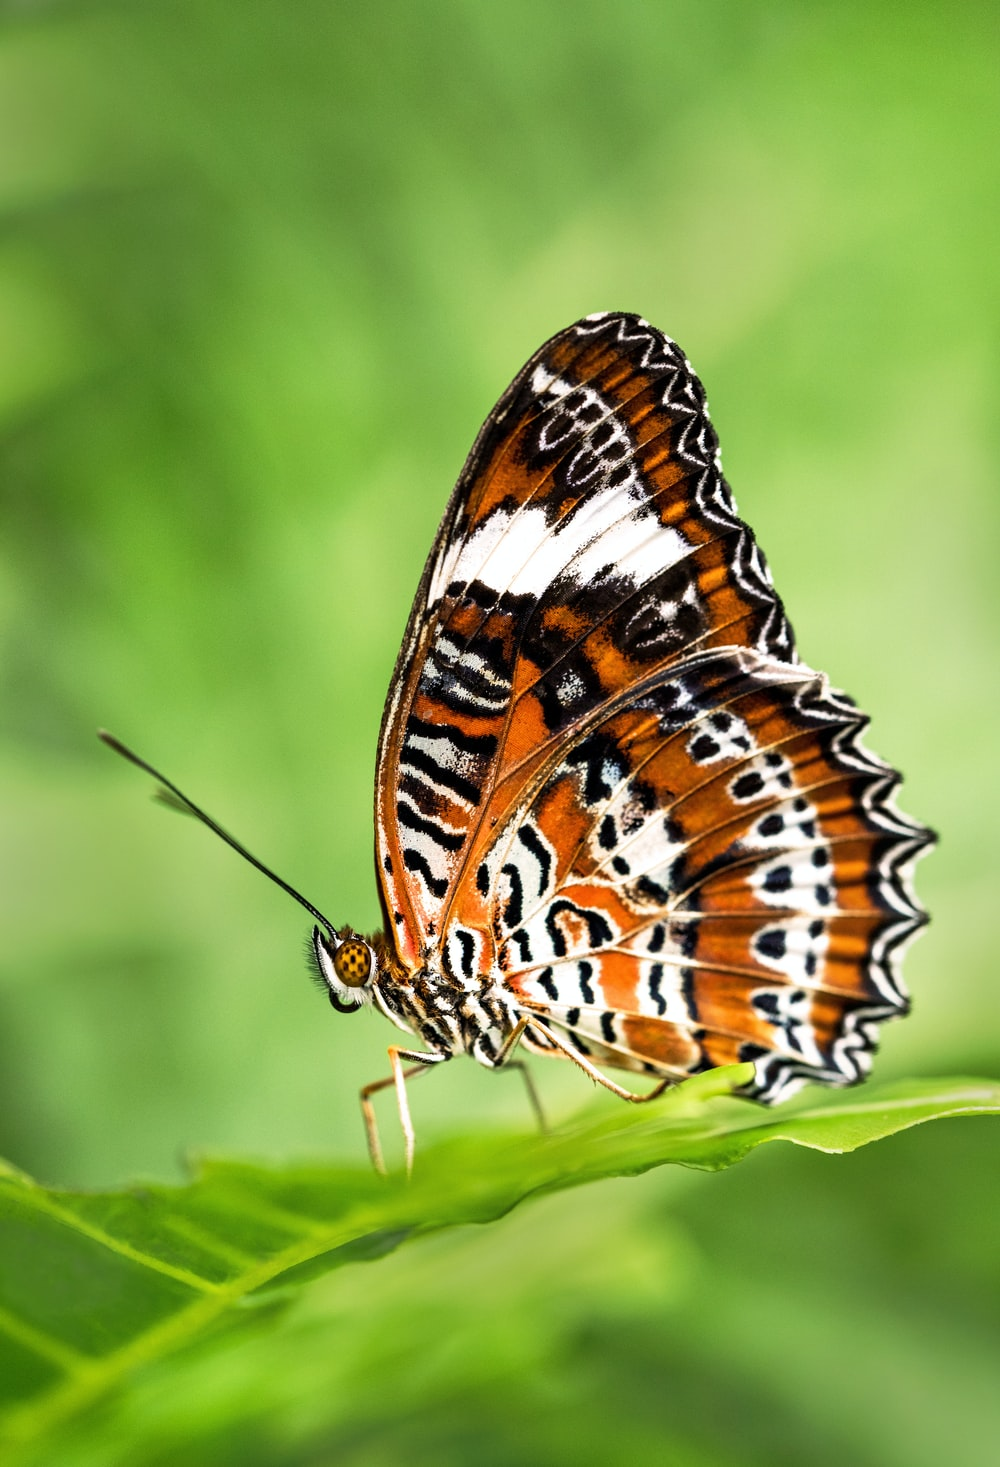 leopard lacewing butterfly perched on green leafed plant